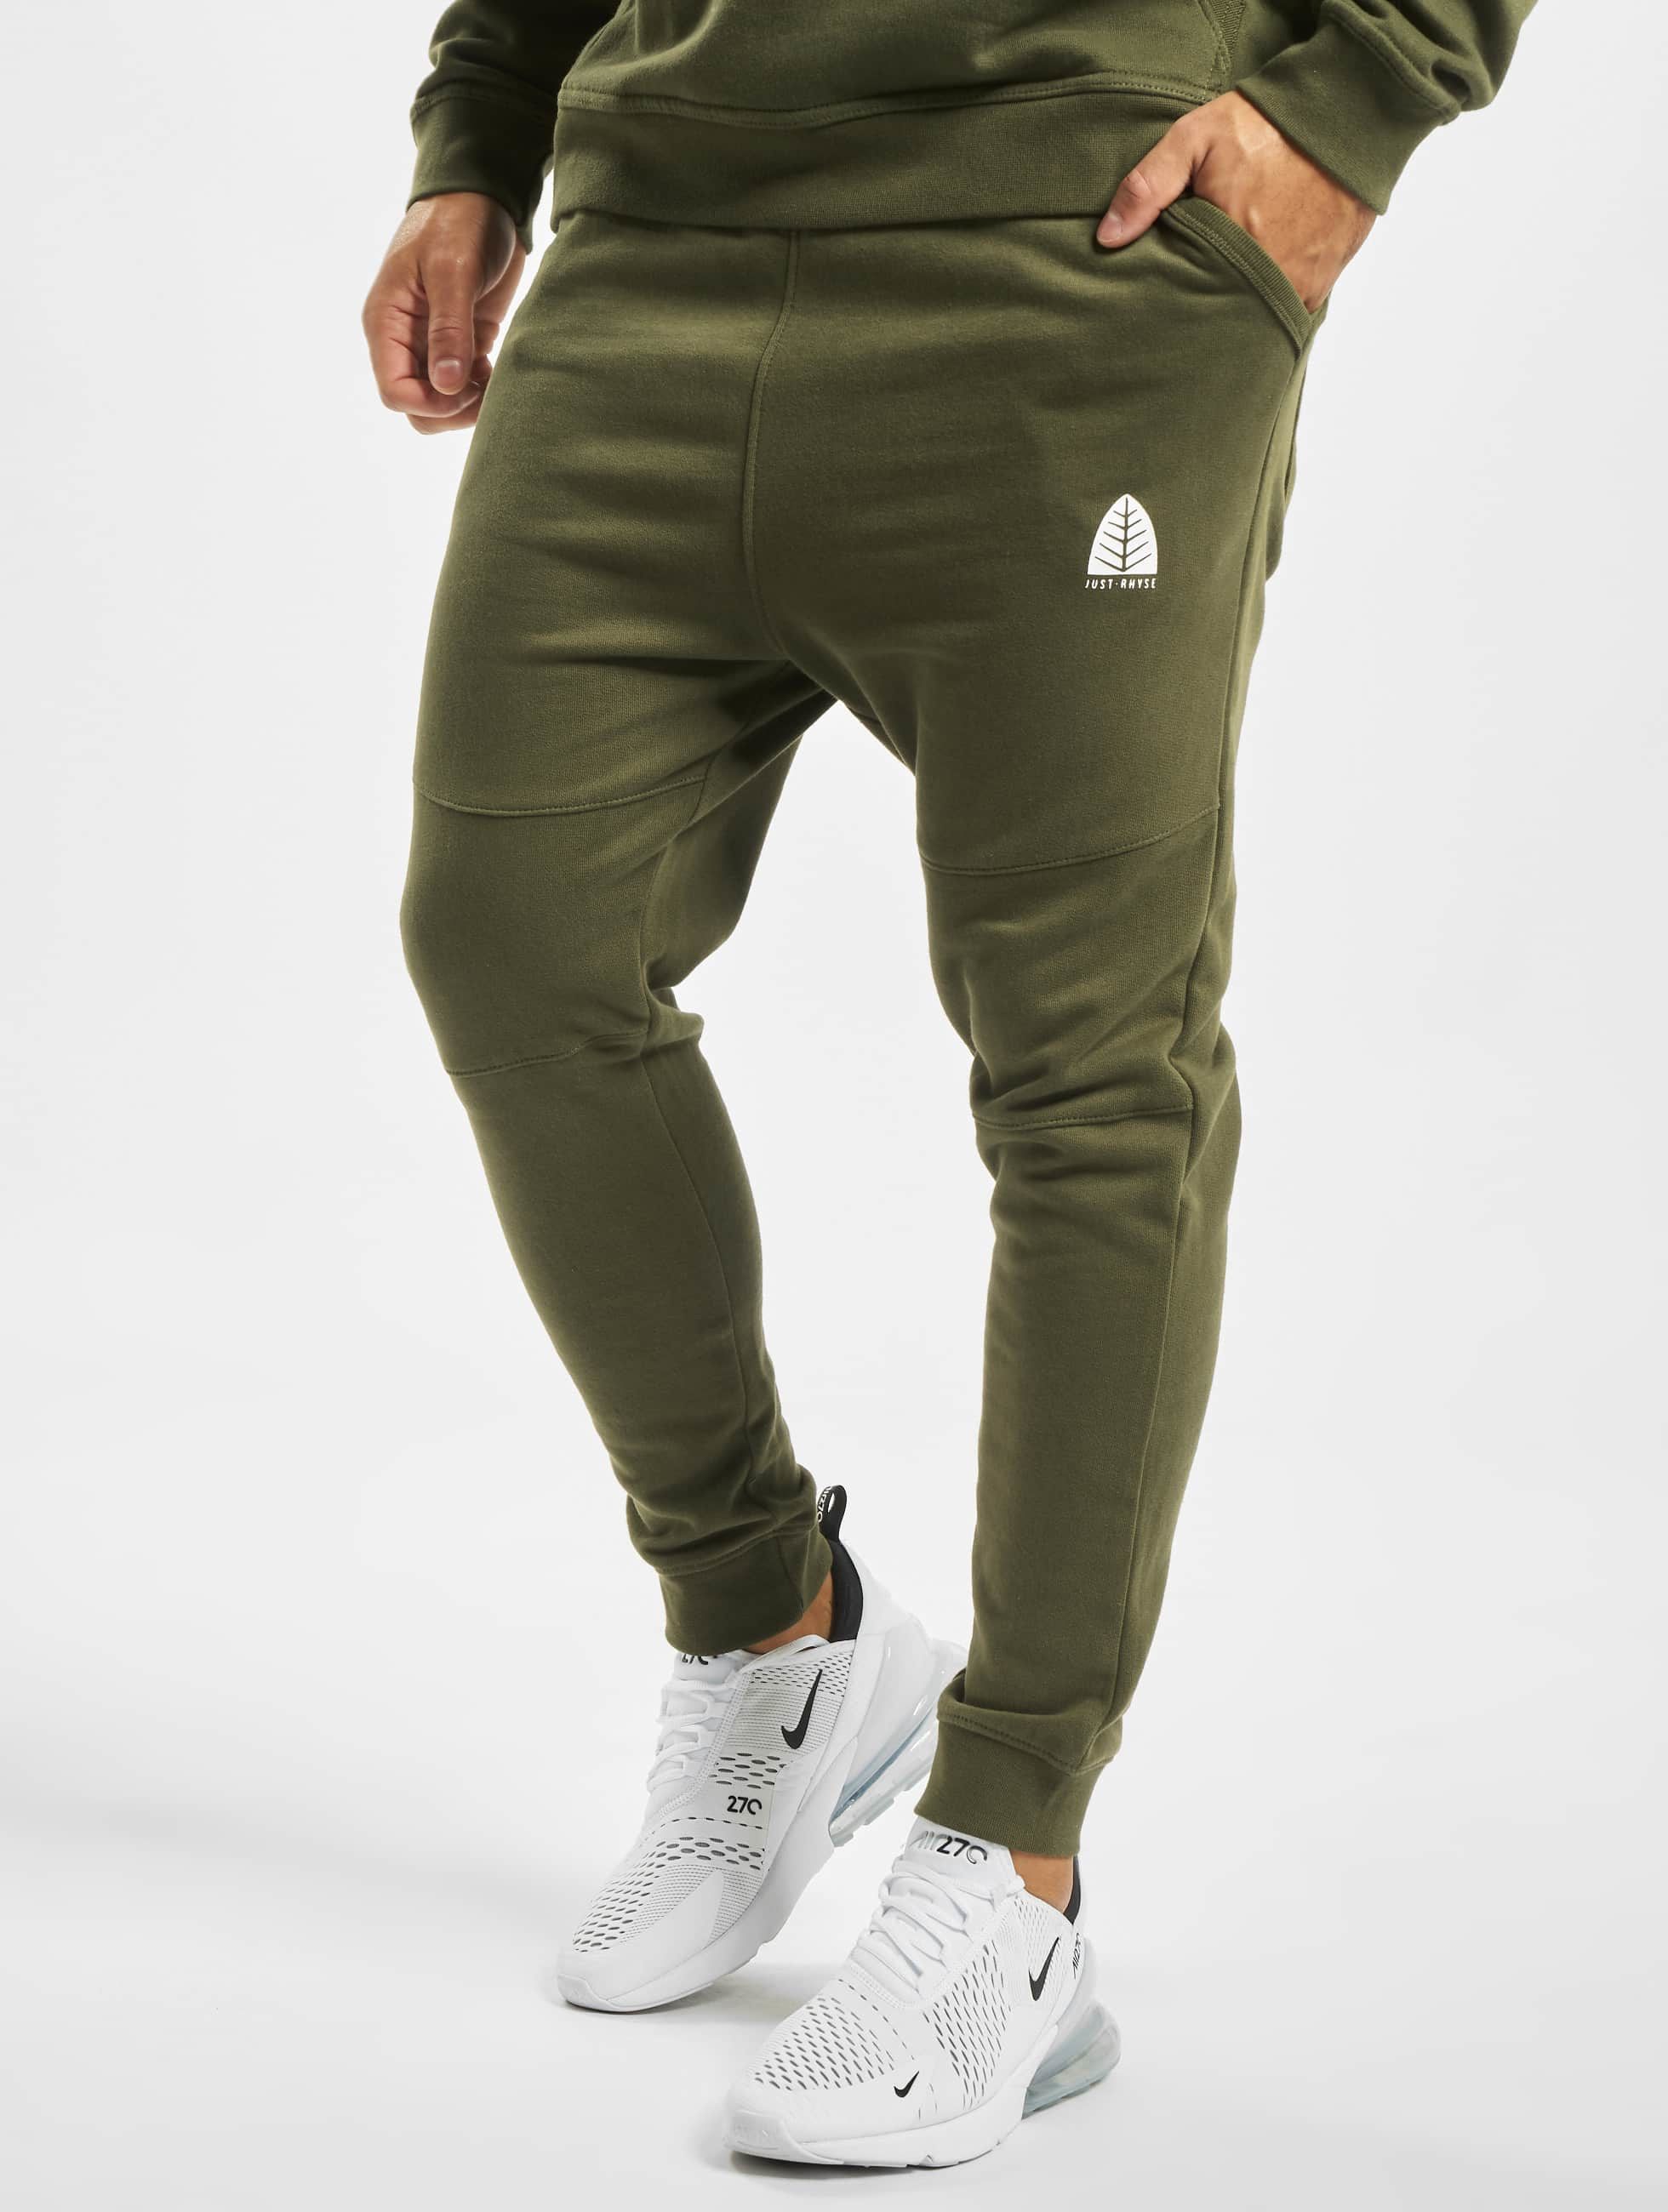 Just Rhyse / Sweat Pant Rainrock in olive 3XL